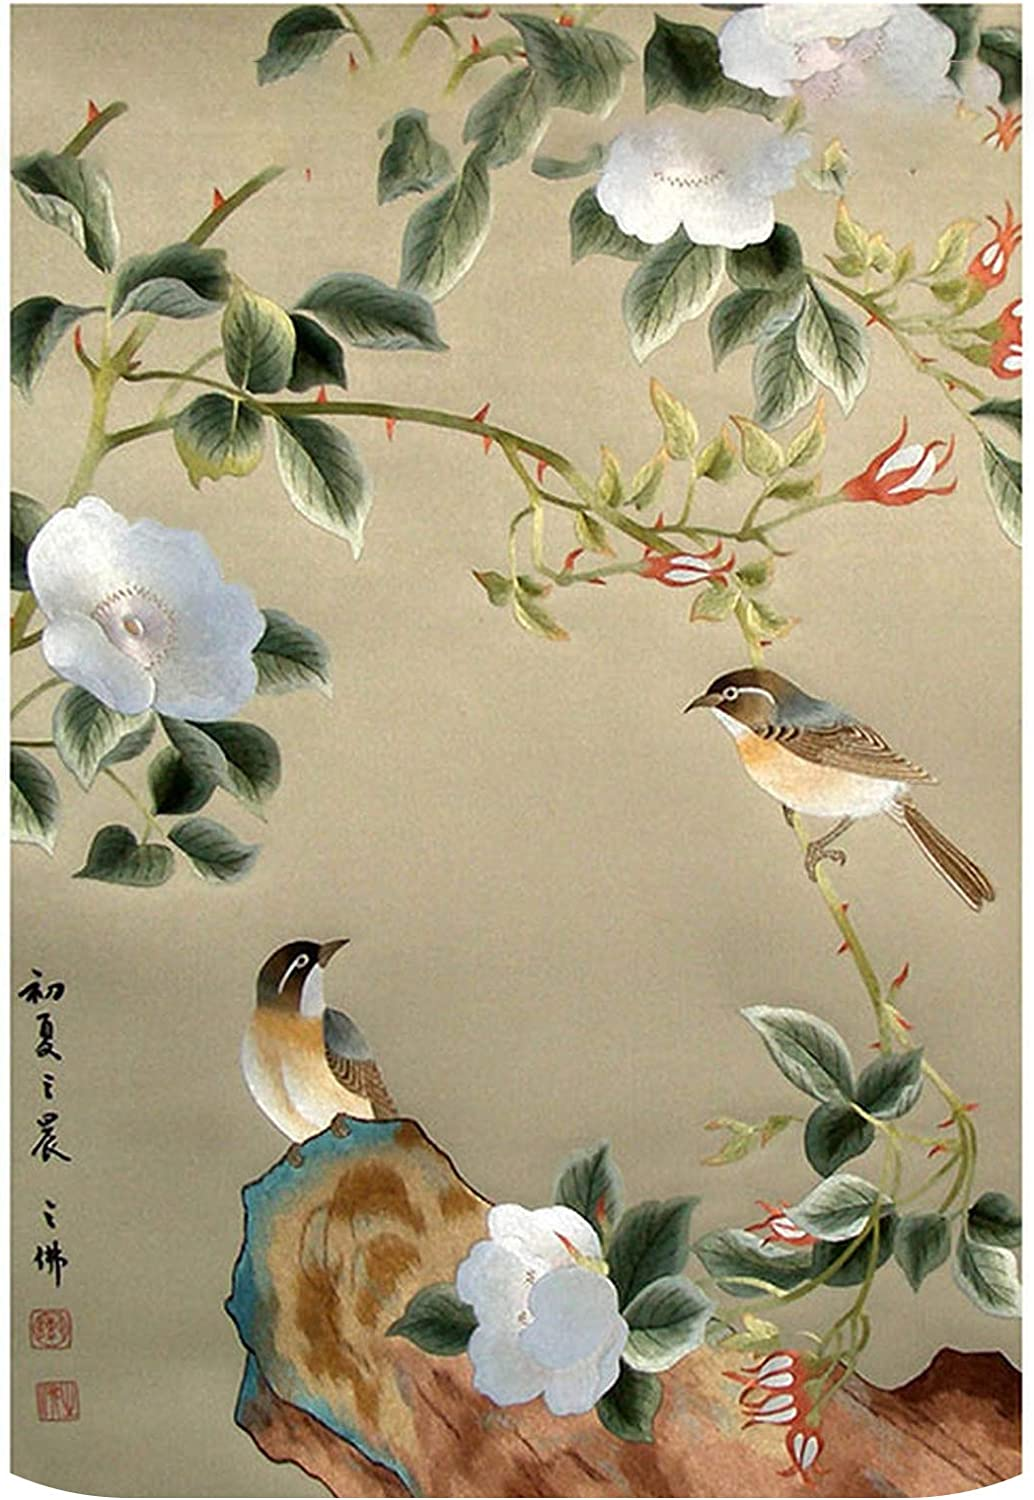 DIY 100% Mulberry Silk Suzhou N Printed Patterns Bombing new work Embroidery Popular Sets